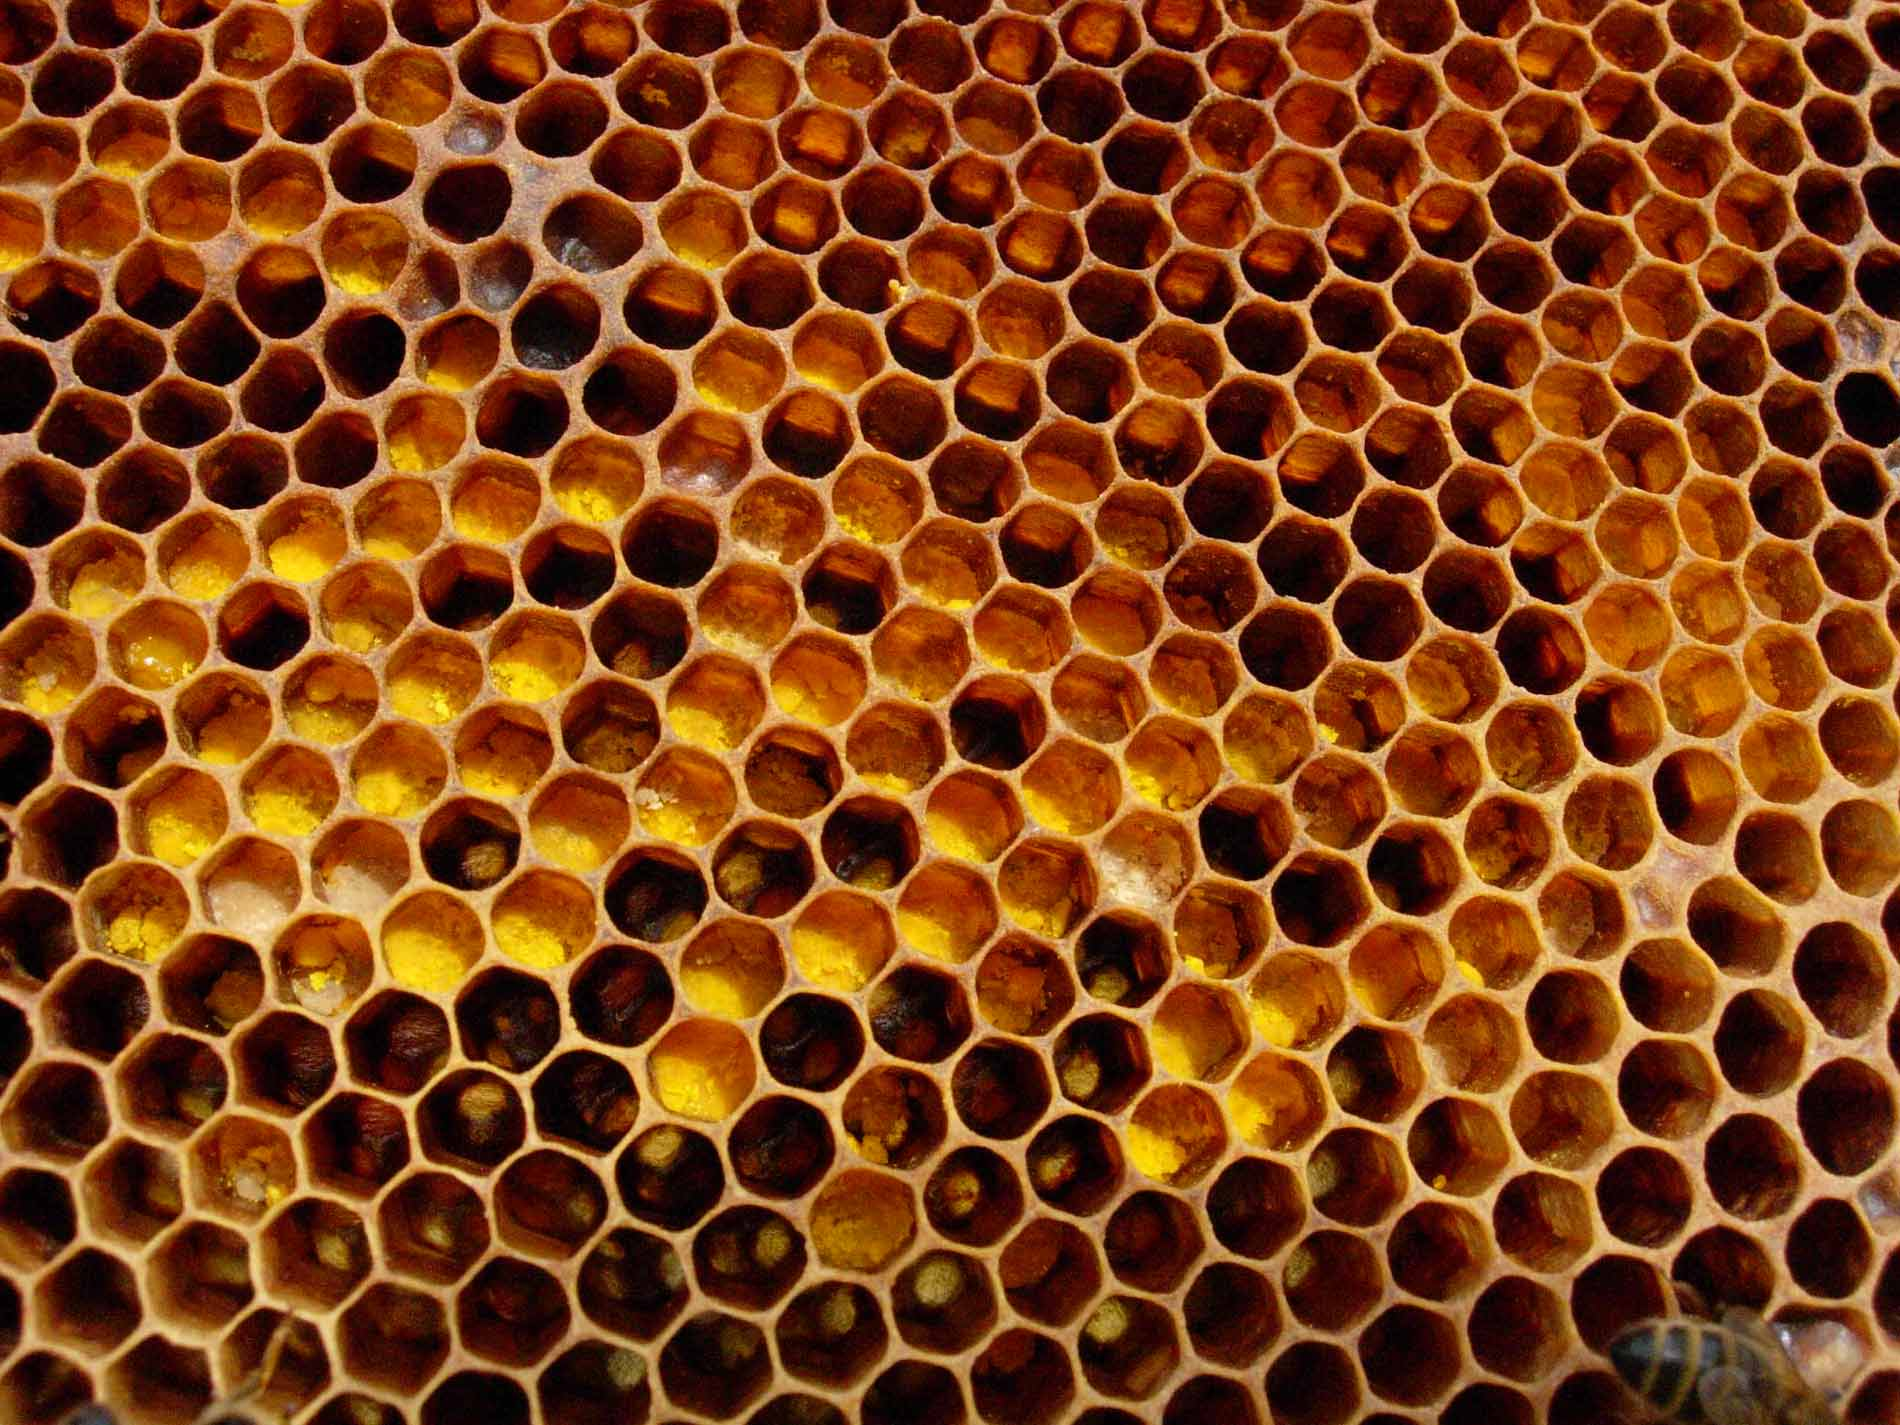 Honey Bees and Honeycomb